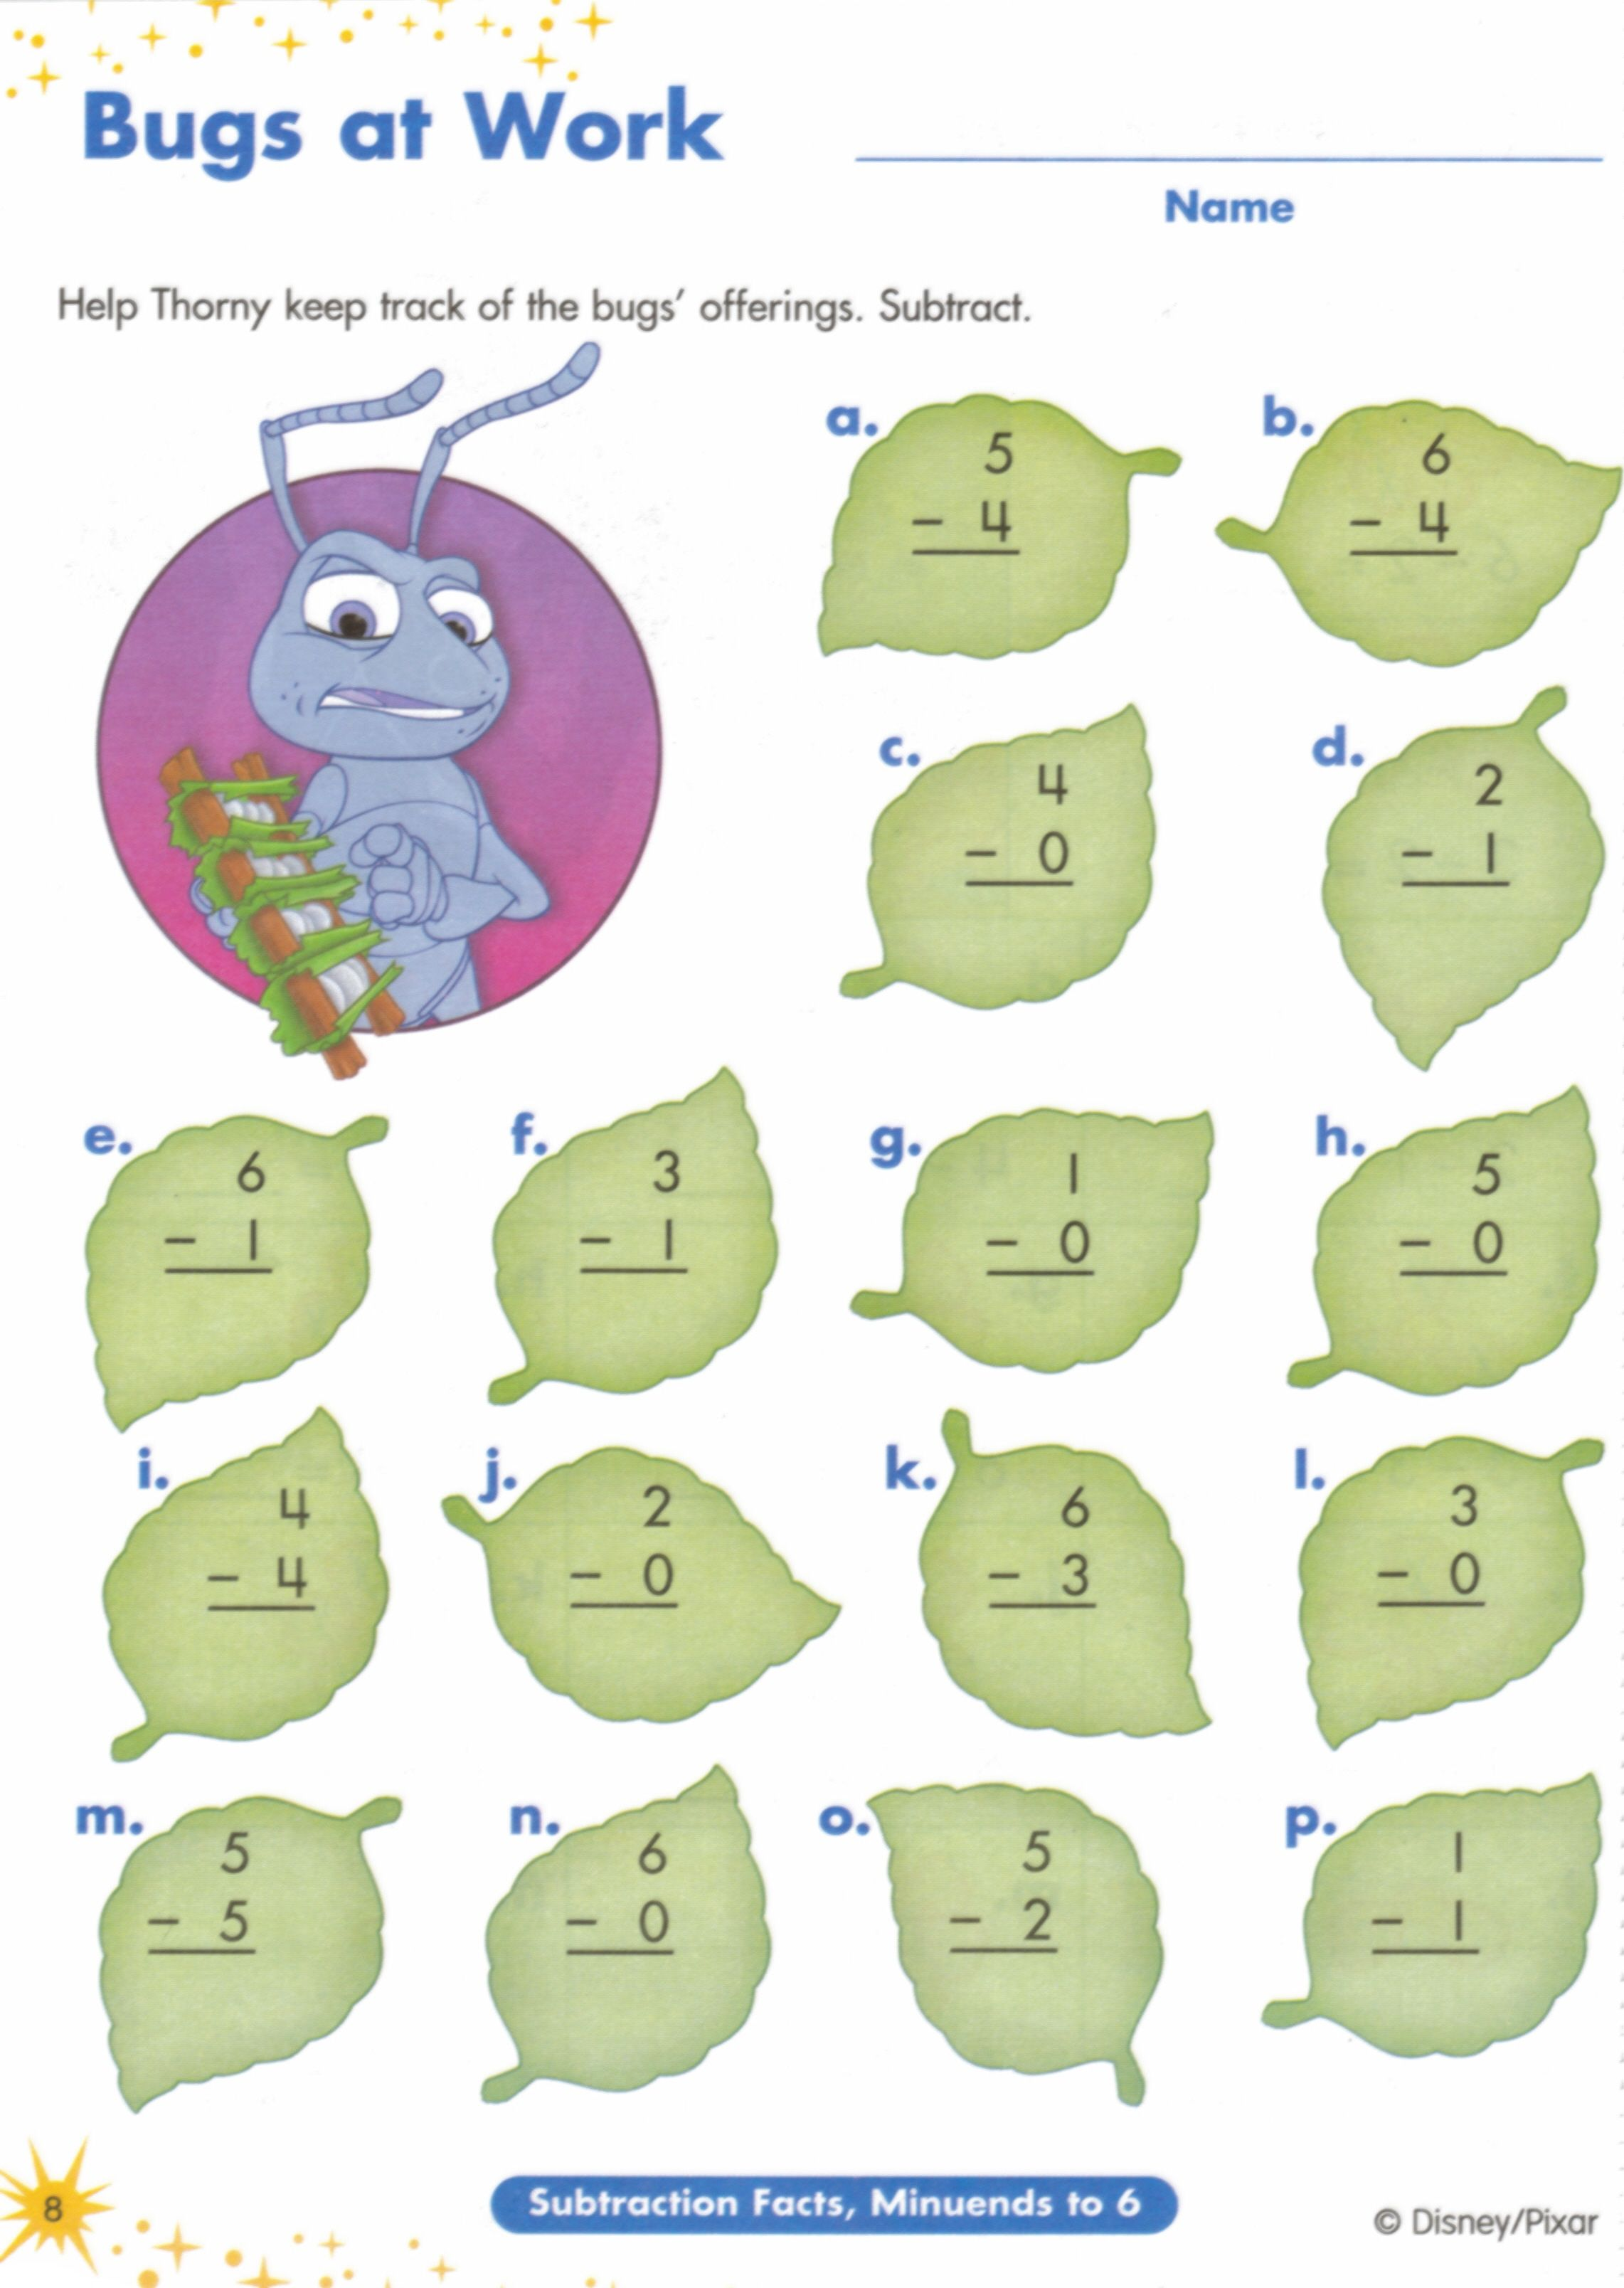 Weirdmailus  Nice  Images About Worksheets On Pinterest  Fun Facts For Kids  With Goodlooking  Images About Worksheets On Pinterest  Fun Facts For Kids Earth Day Worksheets And Jungles With Cool Adding Decimals Worksheet Also Classification Of Matter Worksheet In Addition Unit Conversion Worksheet And Function Notation Worksheet As Well As Average Atomic Mass Worksheet Additionally Super Teacher Worksheet From Pinterestcom With Weirdmailus  Goodlooking  Images About Worksheets On Pinterest  Fun Facts For Kids  With Cool  Images About Worksheets On Pinterest  Fun Facts For Kids Earth Day Worksheets And Jungles And Nice Adding Decimals Worksheet Also Classification Of Matter Worksheet In Addition Unit Conversion Worksheet From Pinterestcom